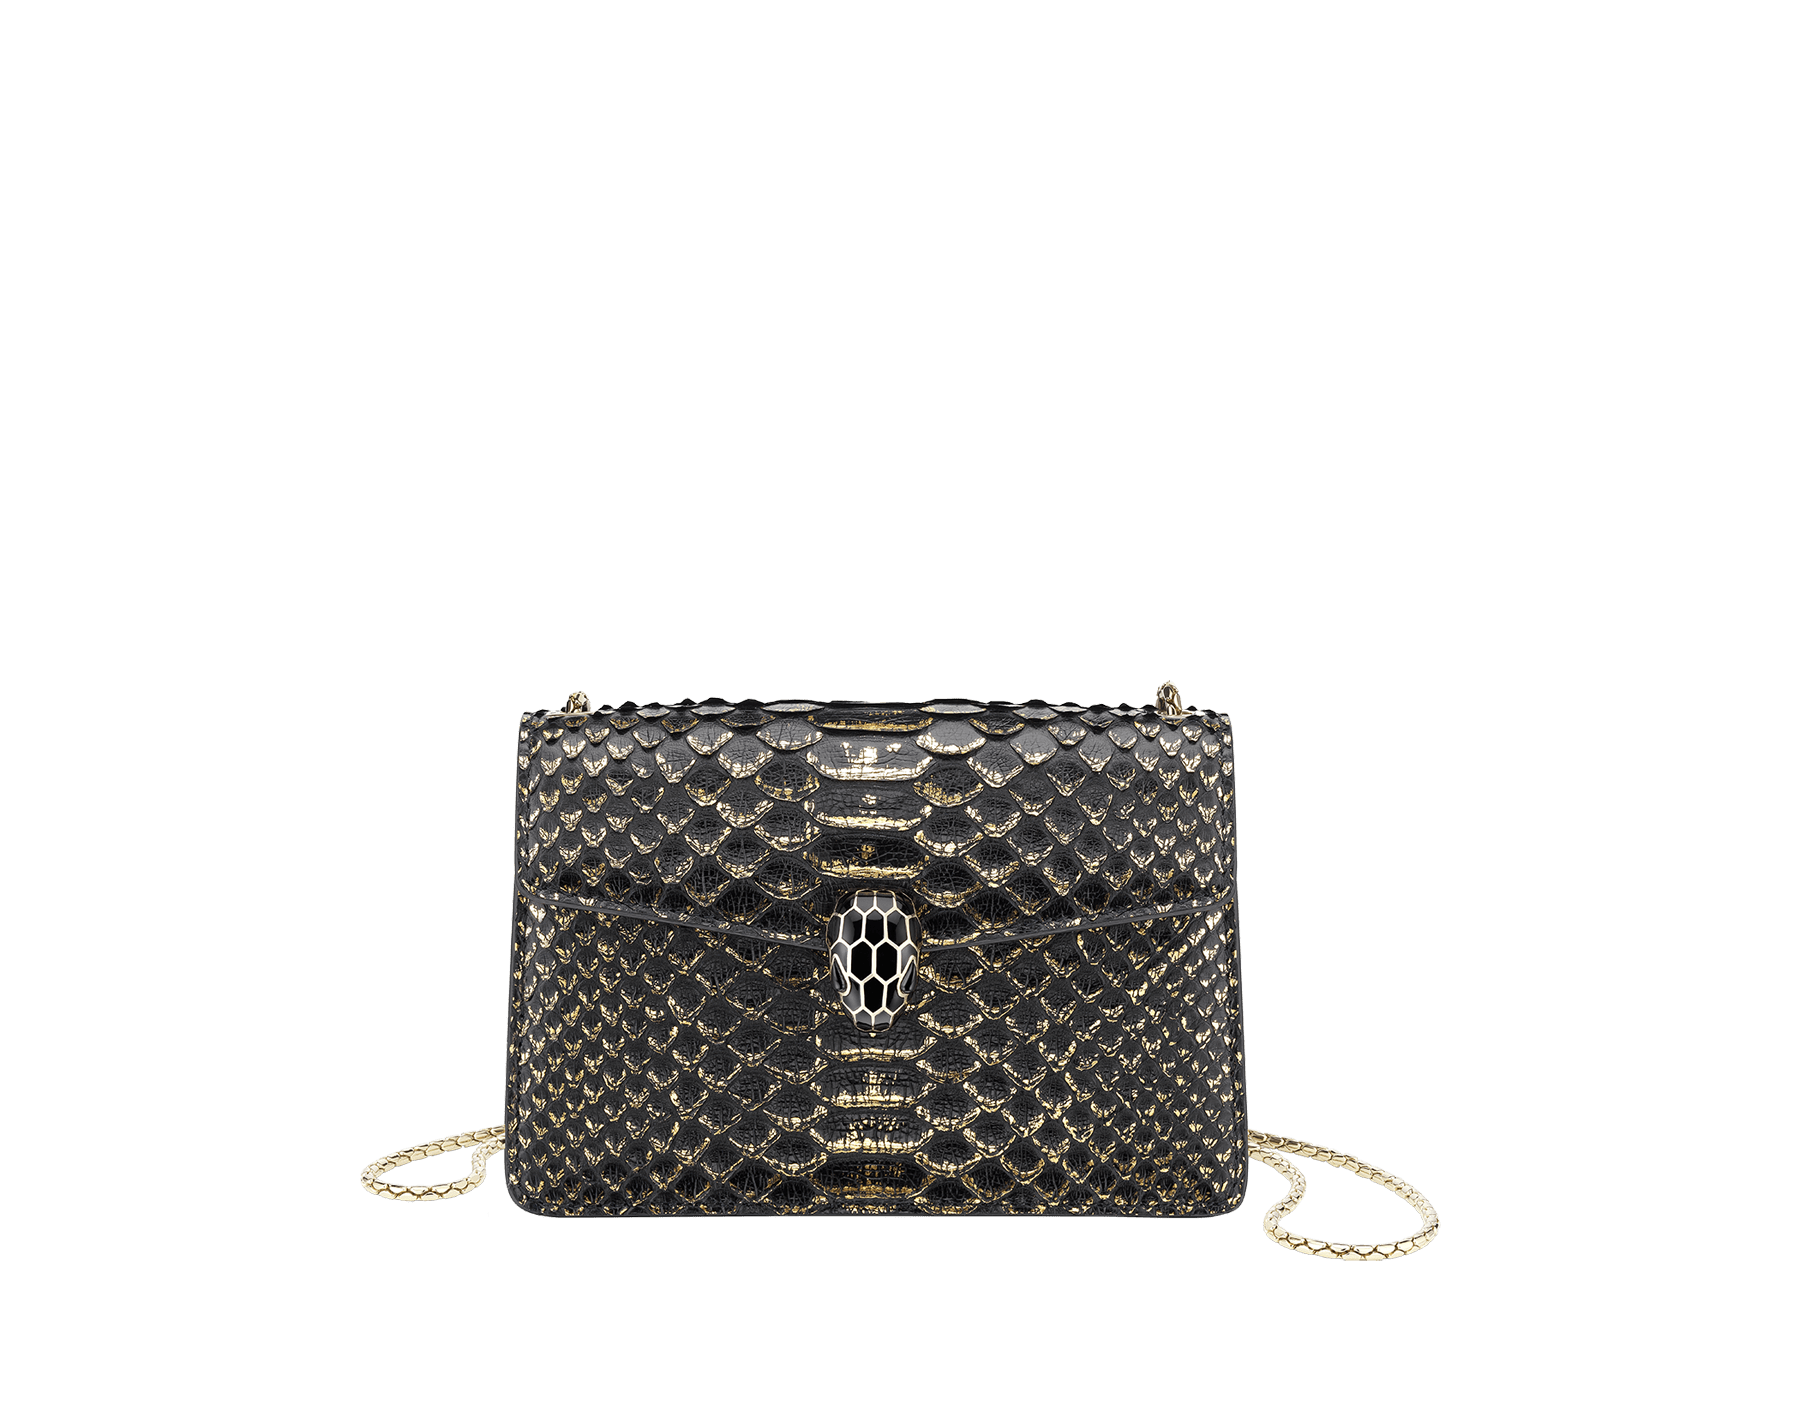 Serpenti Forever mini crossbody bag in black and gold Goldfinger python skin. Brass light gold plated snake head closure in black enamel, with black onyx eyes. 288096 image 1